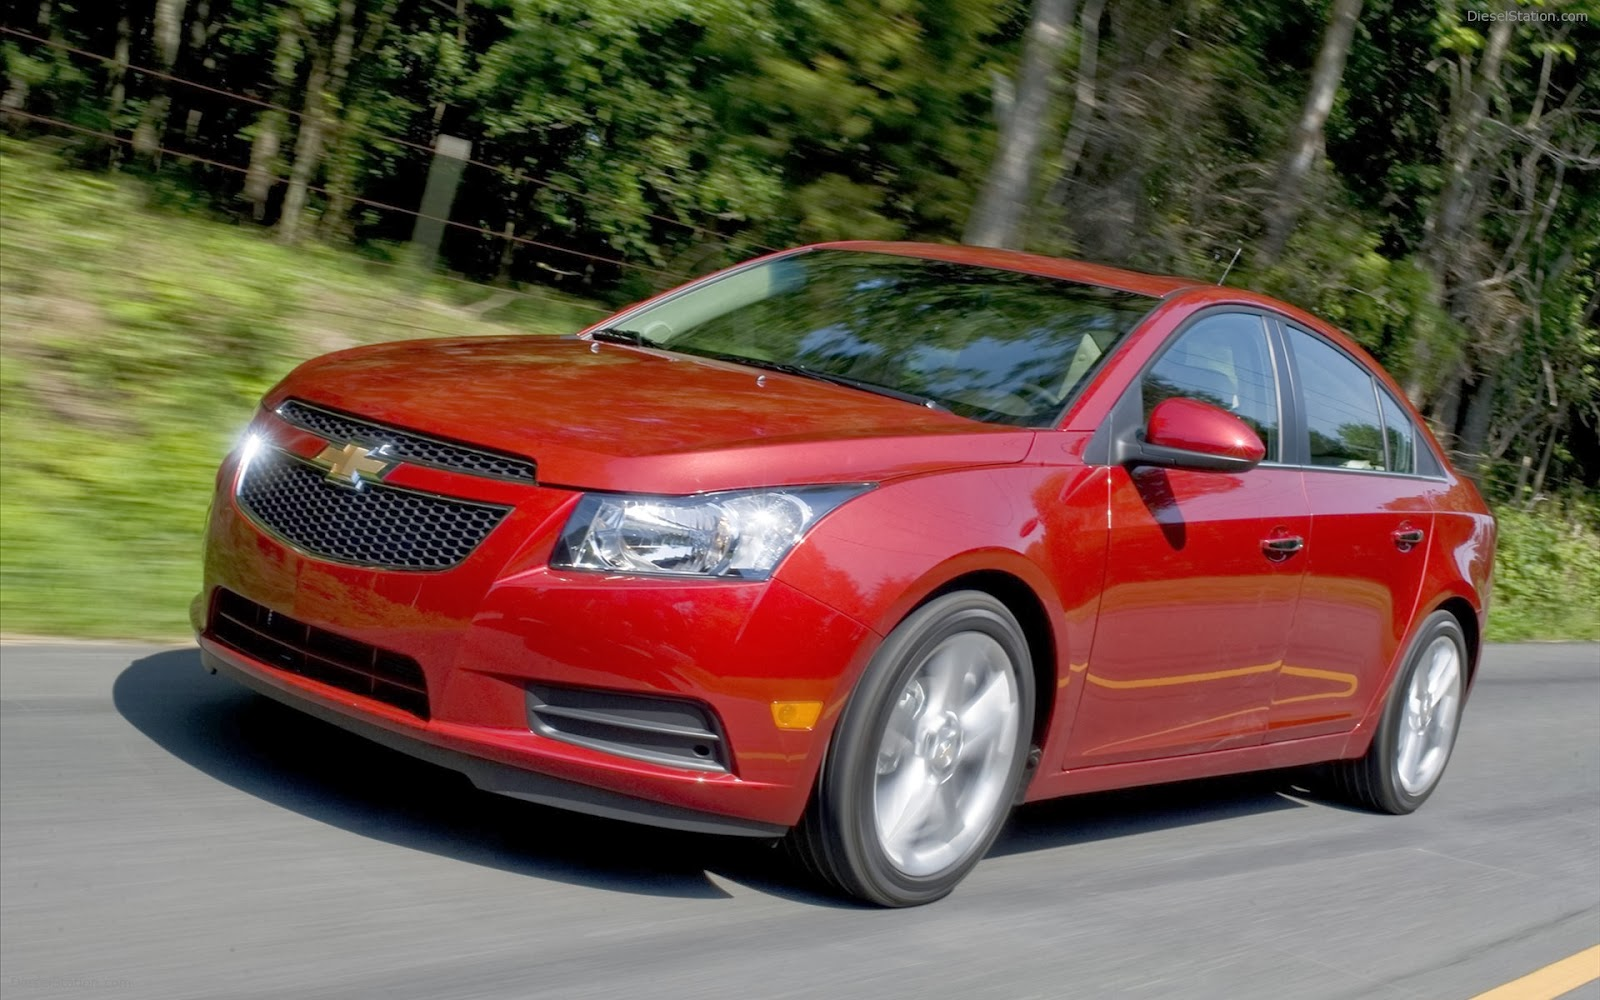 http://www.crazywallpapers.in/2014/03/chevrolet-cruze-hd-wide-pictures.html